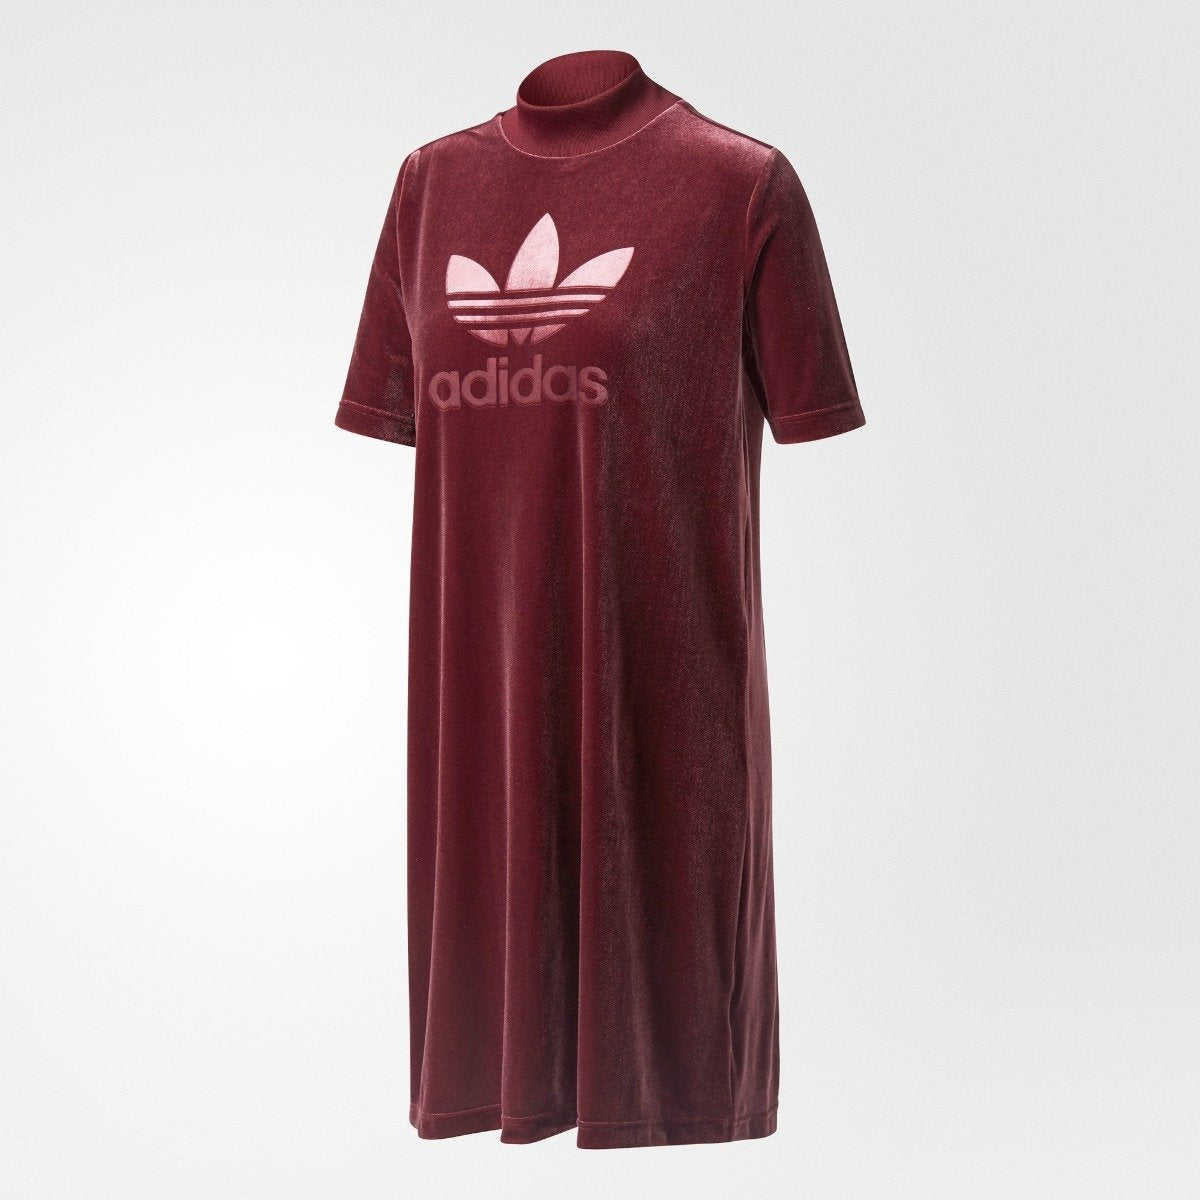 cd7d348ddc97 Women s adidas Originals Velvet Vibes Short Dress Maroon Red CW0280 ...